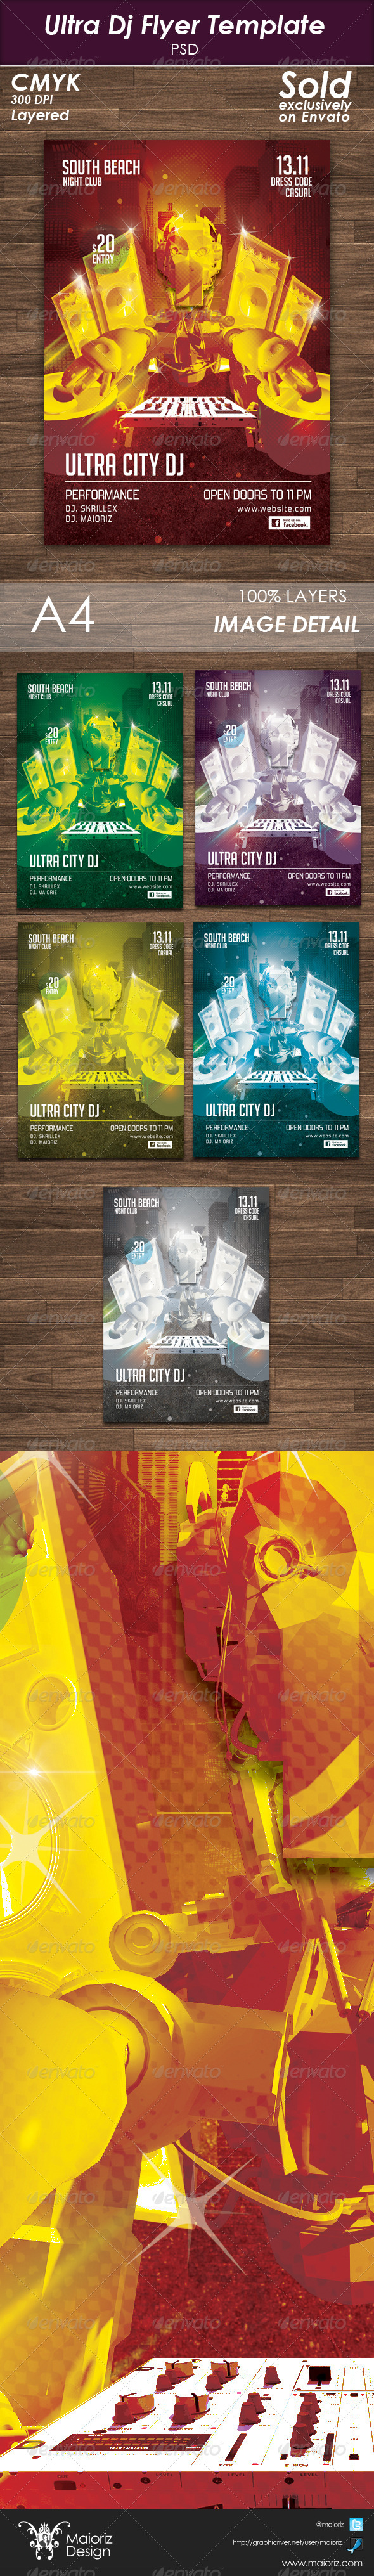 GraphicRiver Ultra Dj Flyer Template 5604033